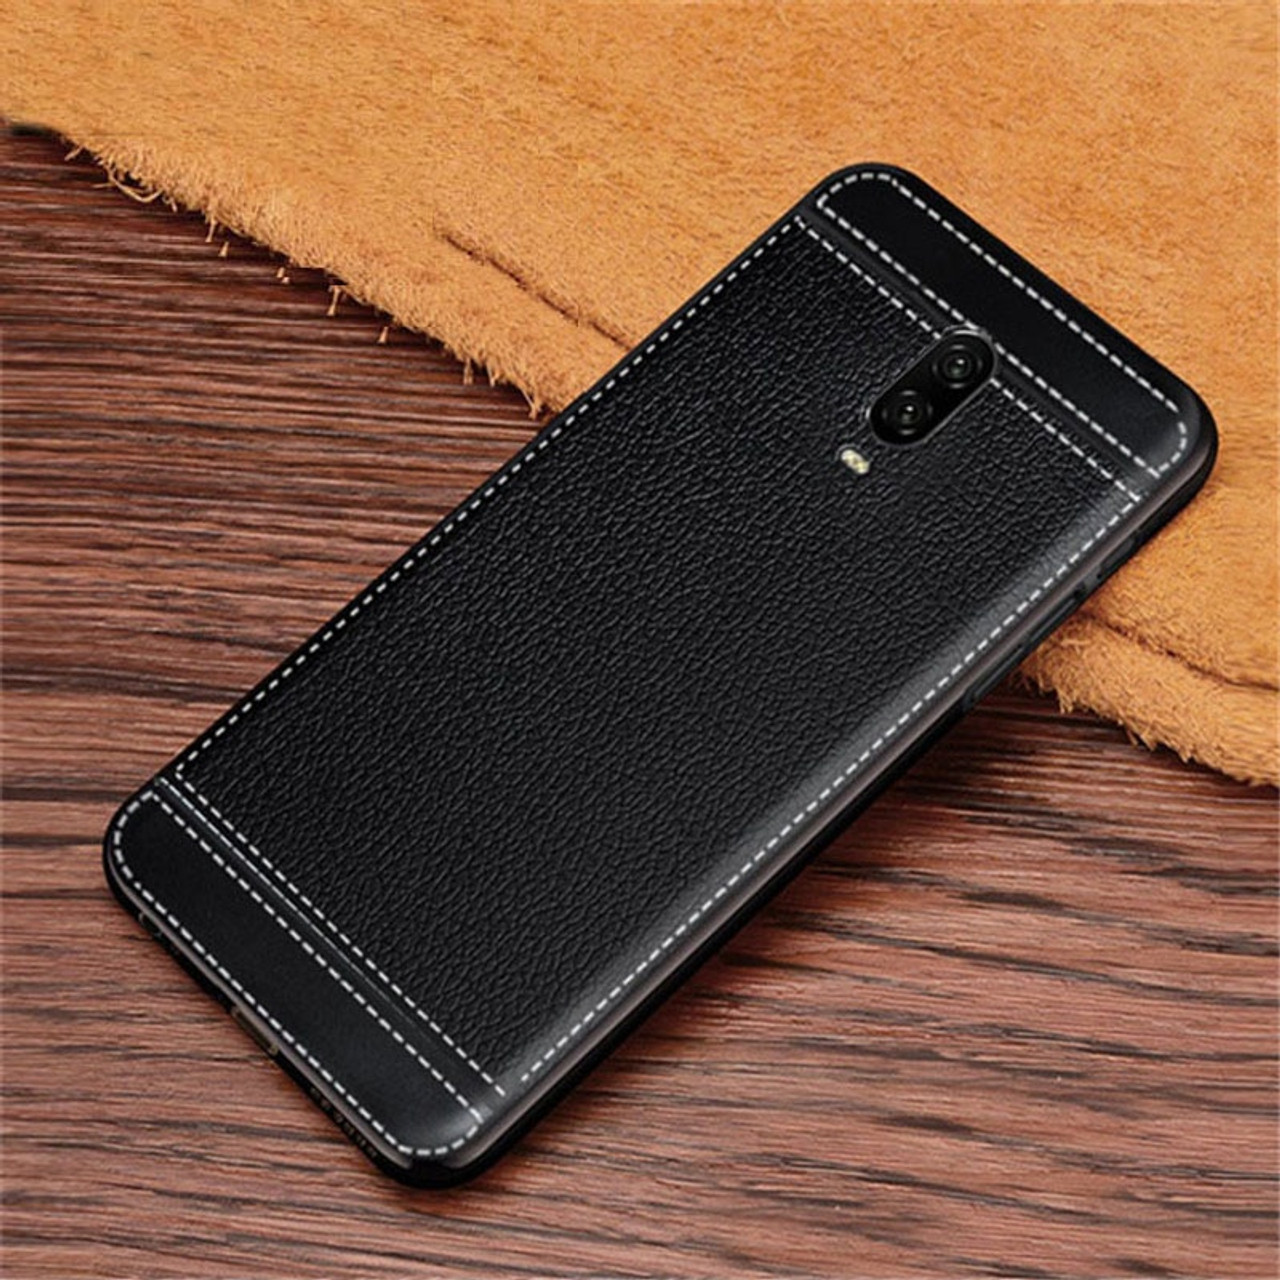 f2e30b73ec4 Oneplus 6 Case Oneplus 6 Litchi Texture Soft TPU Phone Case Oneplus 6 1+6T One  Plus 6T Oneplus6T Case Silicone 6.28 inch - OnshopDeals.Com